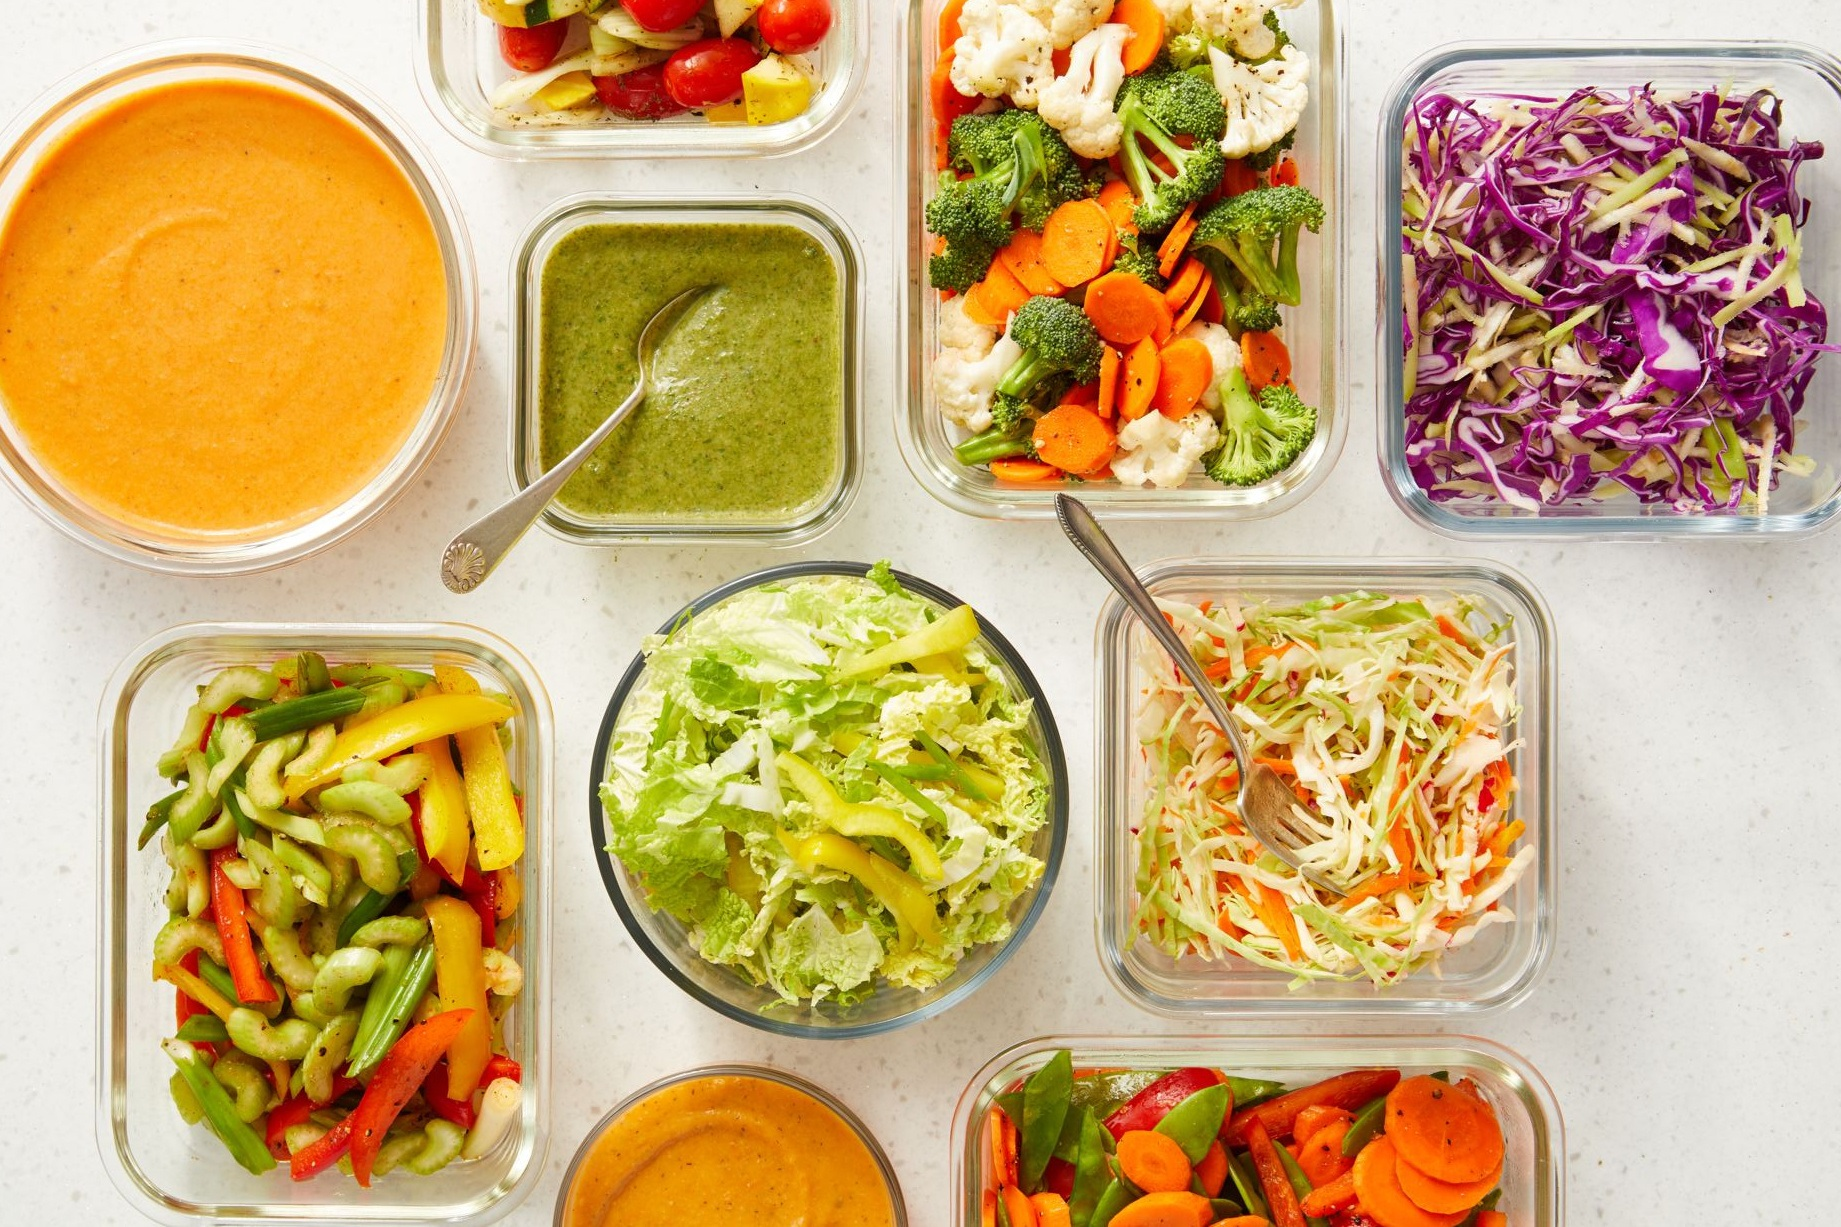 overhead shot of vegetable mixes, vegetable slaws, and vegetables sauces